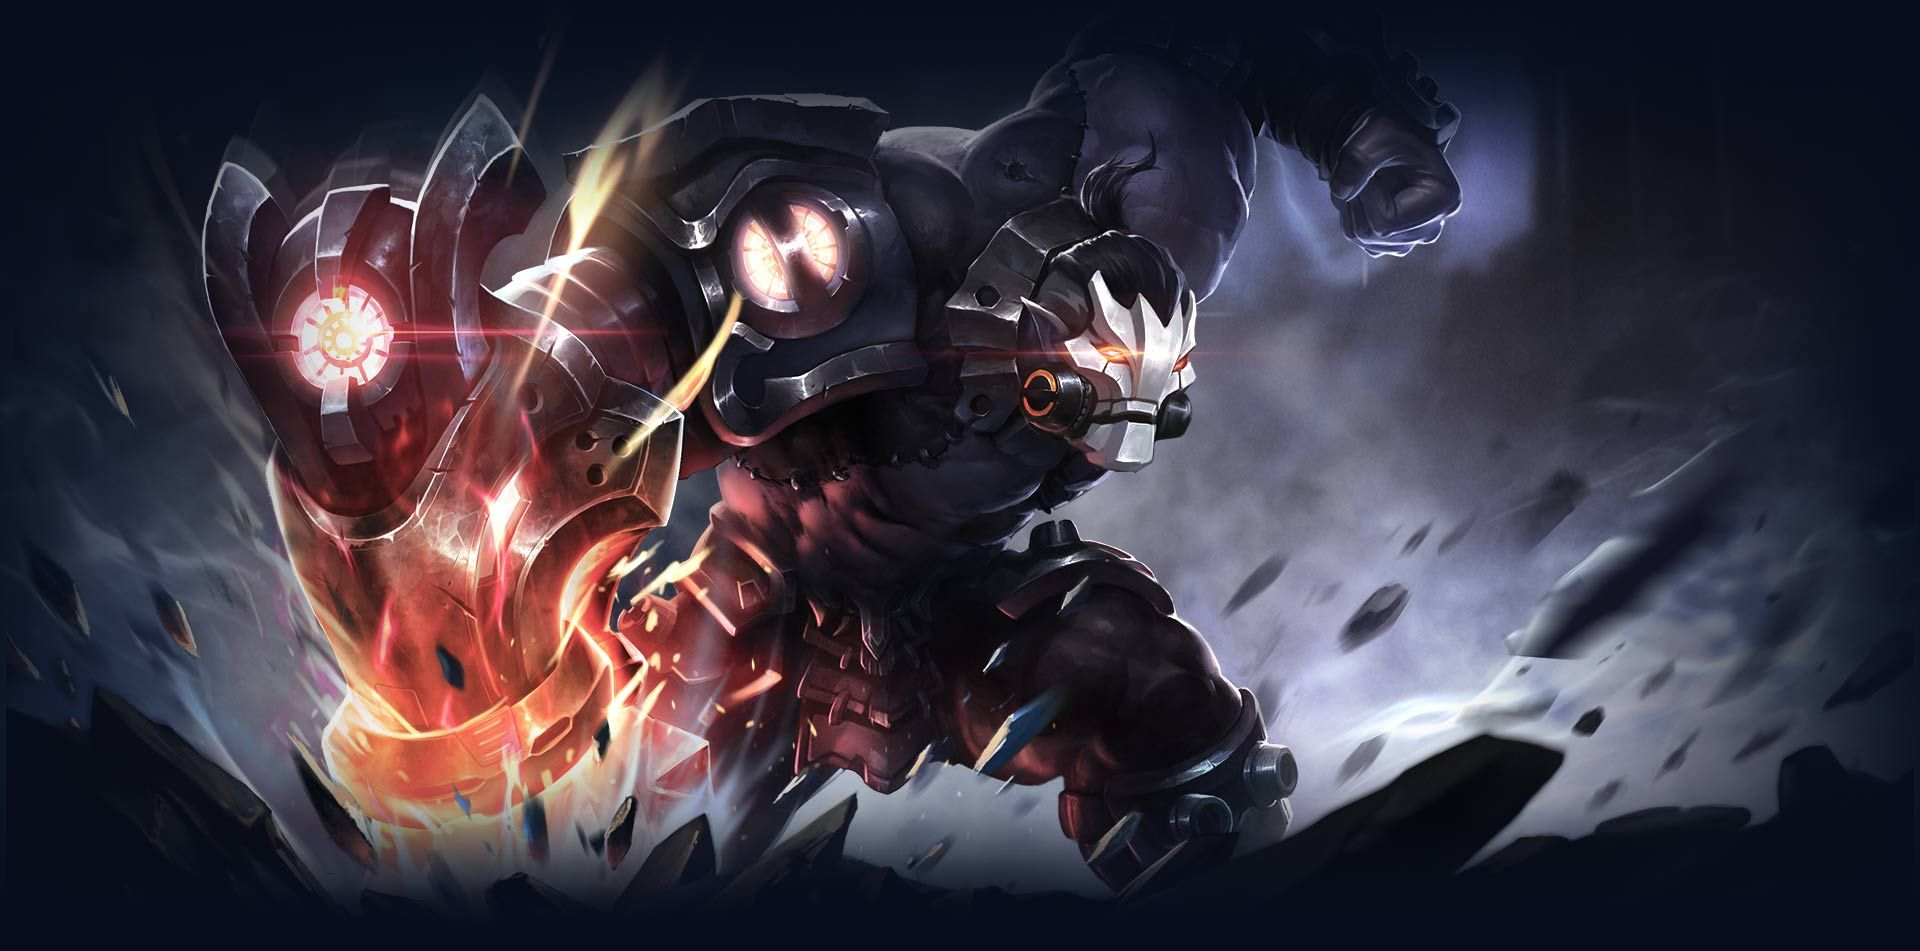 Super COOL! Inilah 100+ Wallpaper HD Arena of Valor (AOV